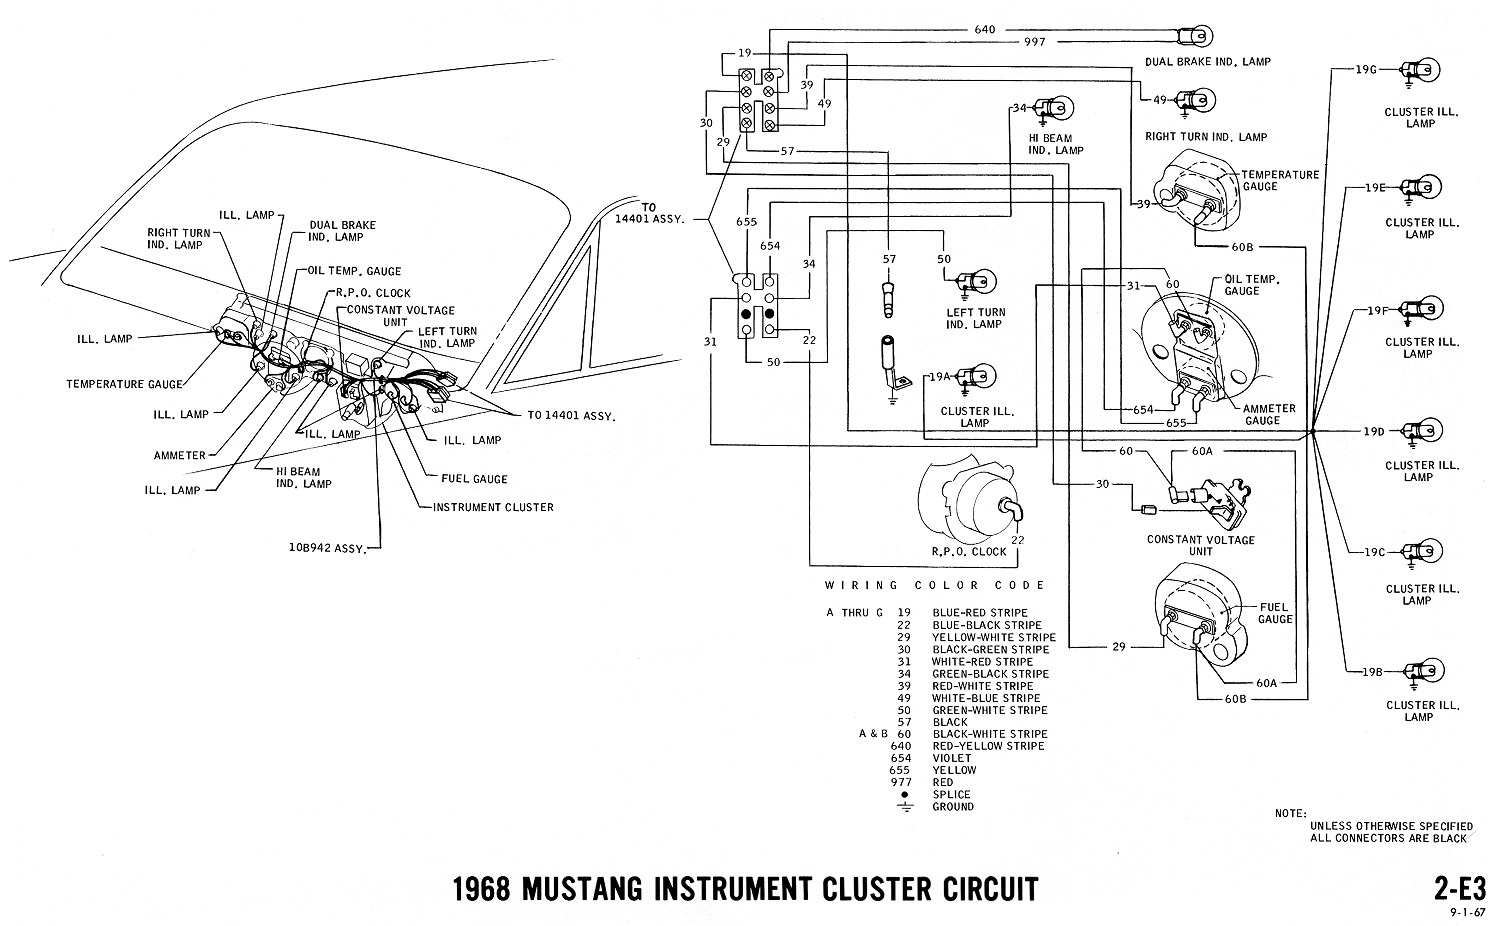 1968 mustang wiring diagram instruments 1970 mustang wiring diagram pdf 1967 mustang wiring diagram pdf 1967 mustang ignition wiring diagram at gsmx.co